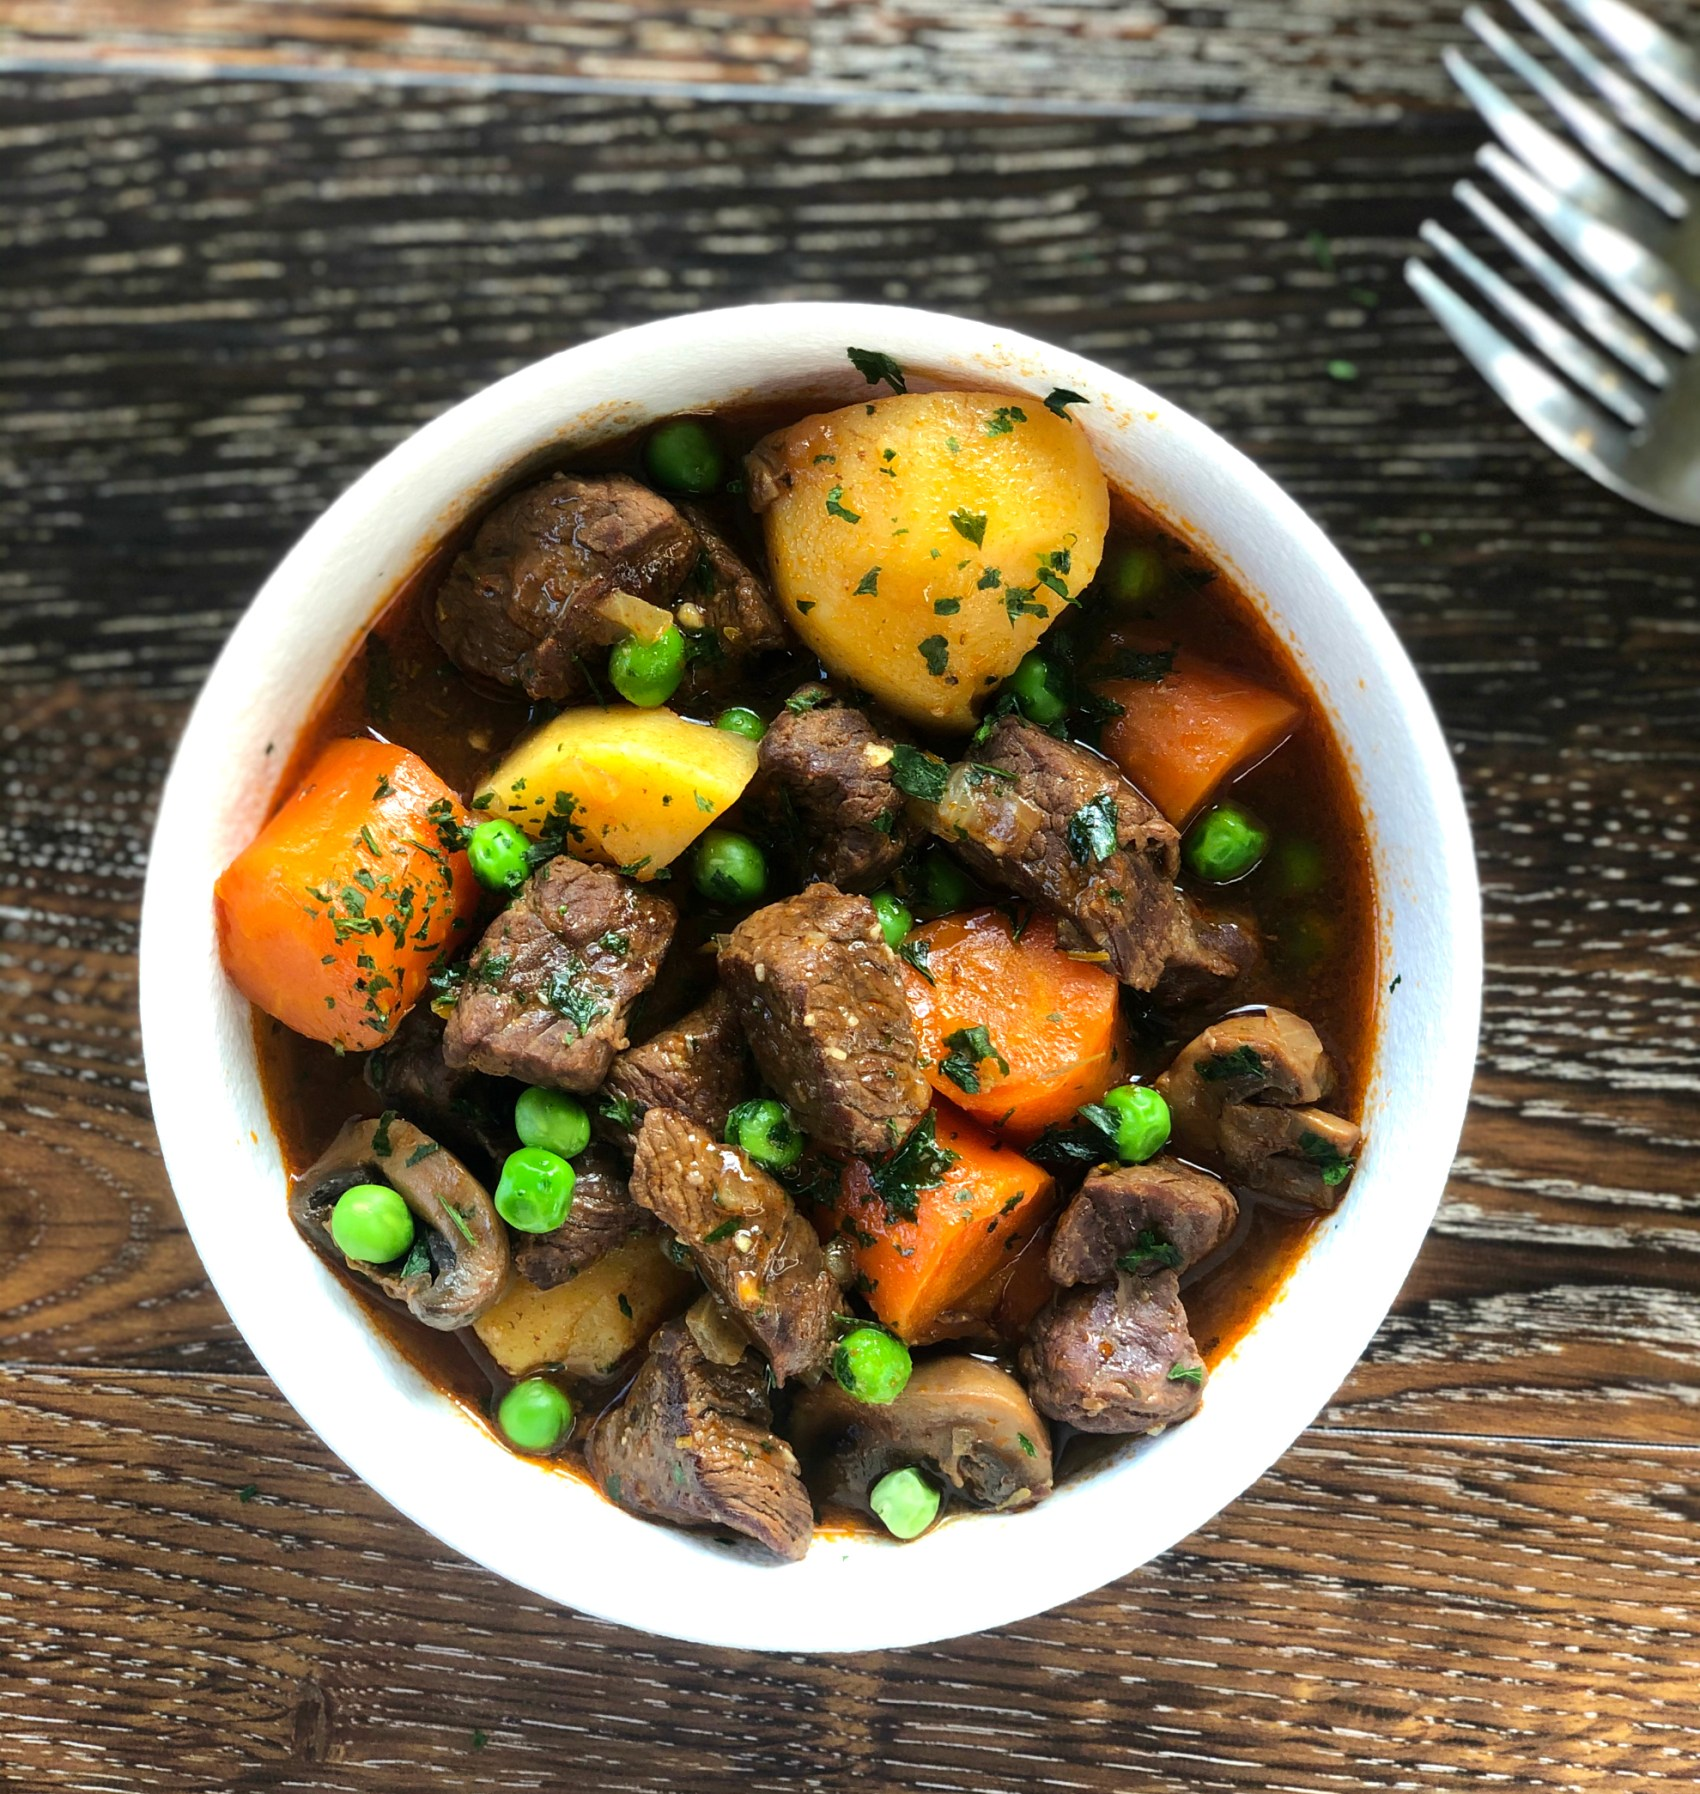 Bowl of one pot beef stew with vegetables